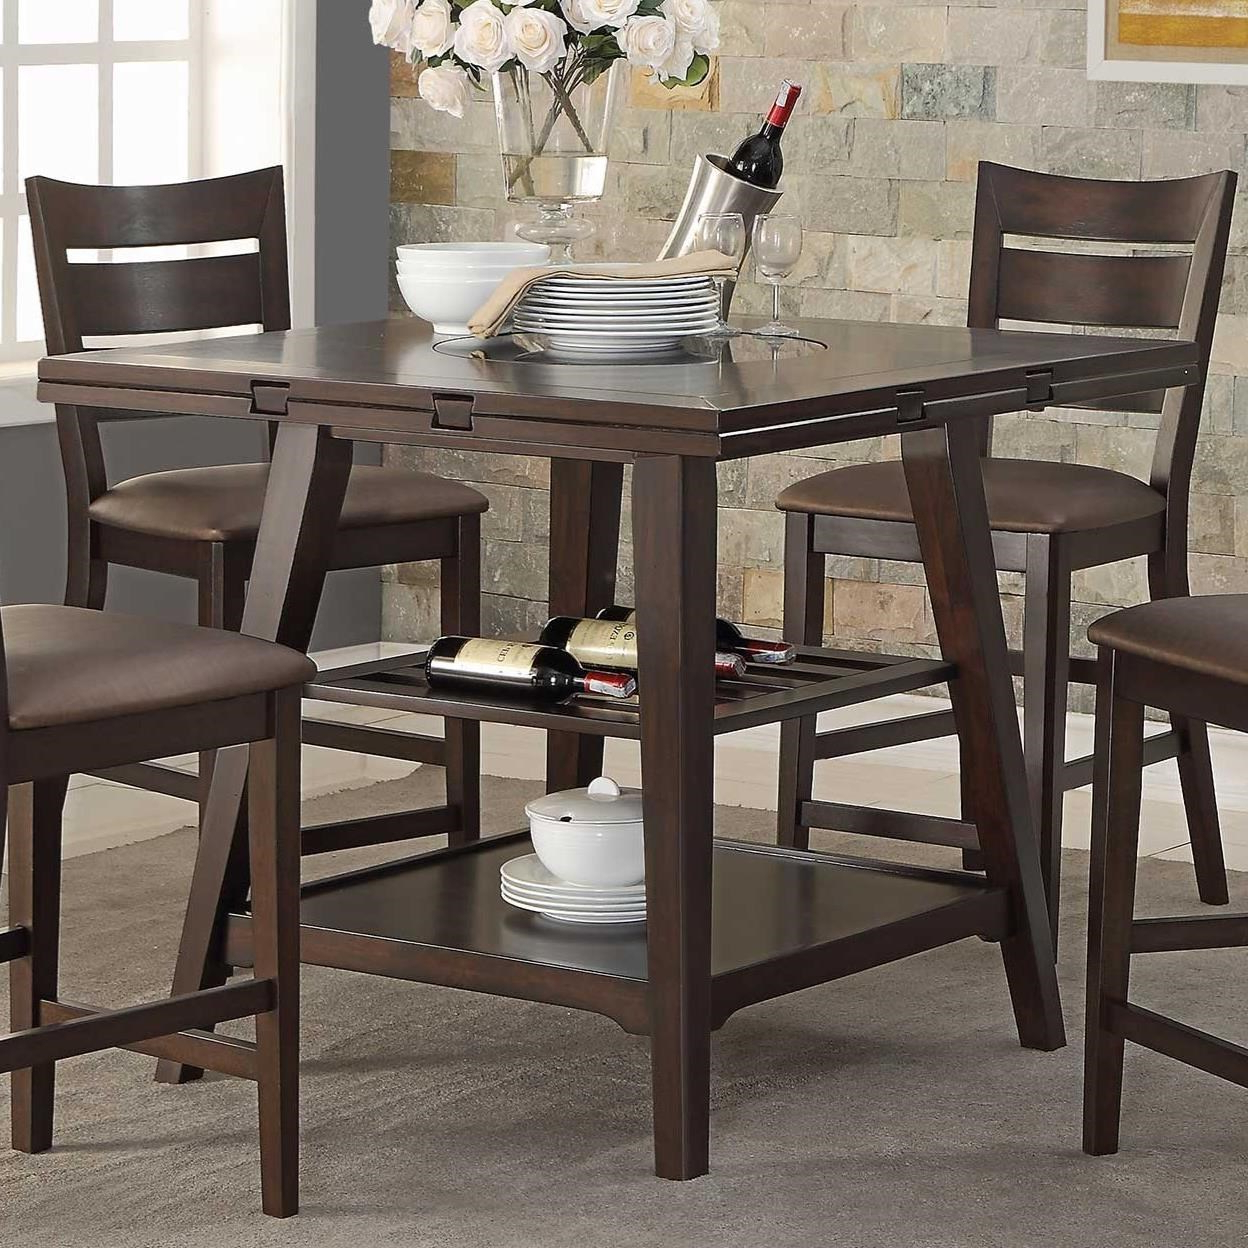 Transitional 4 Seating Drop Leaf Casual Dining Tables With Regard To Most Popular Winners Only Parkside Drop Leaf Counter Height Table With (Gallery 23 of 30)